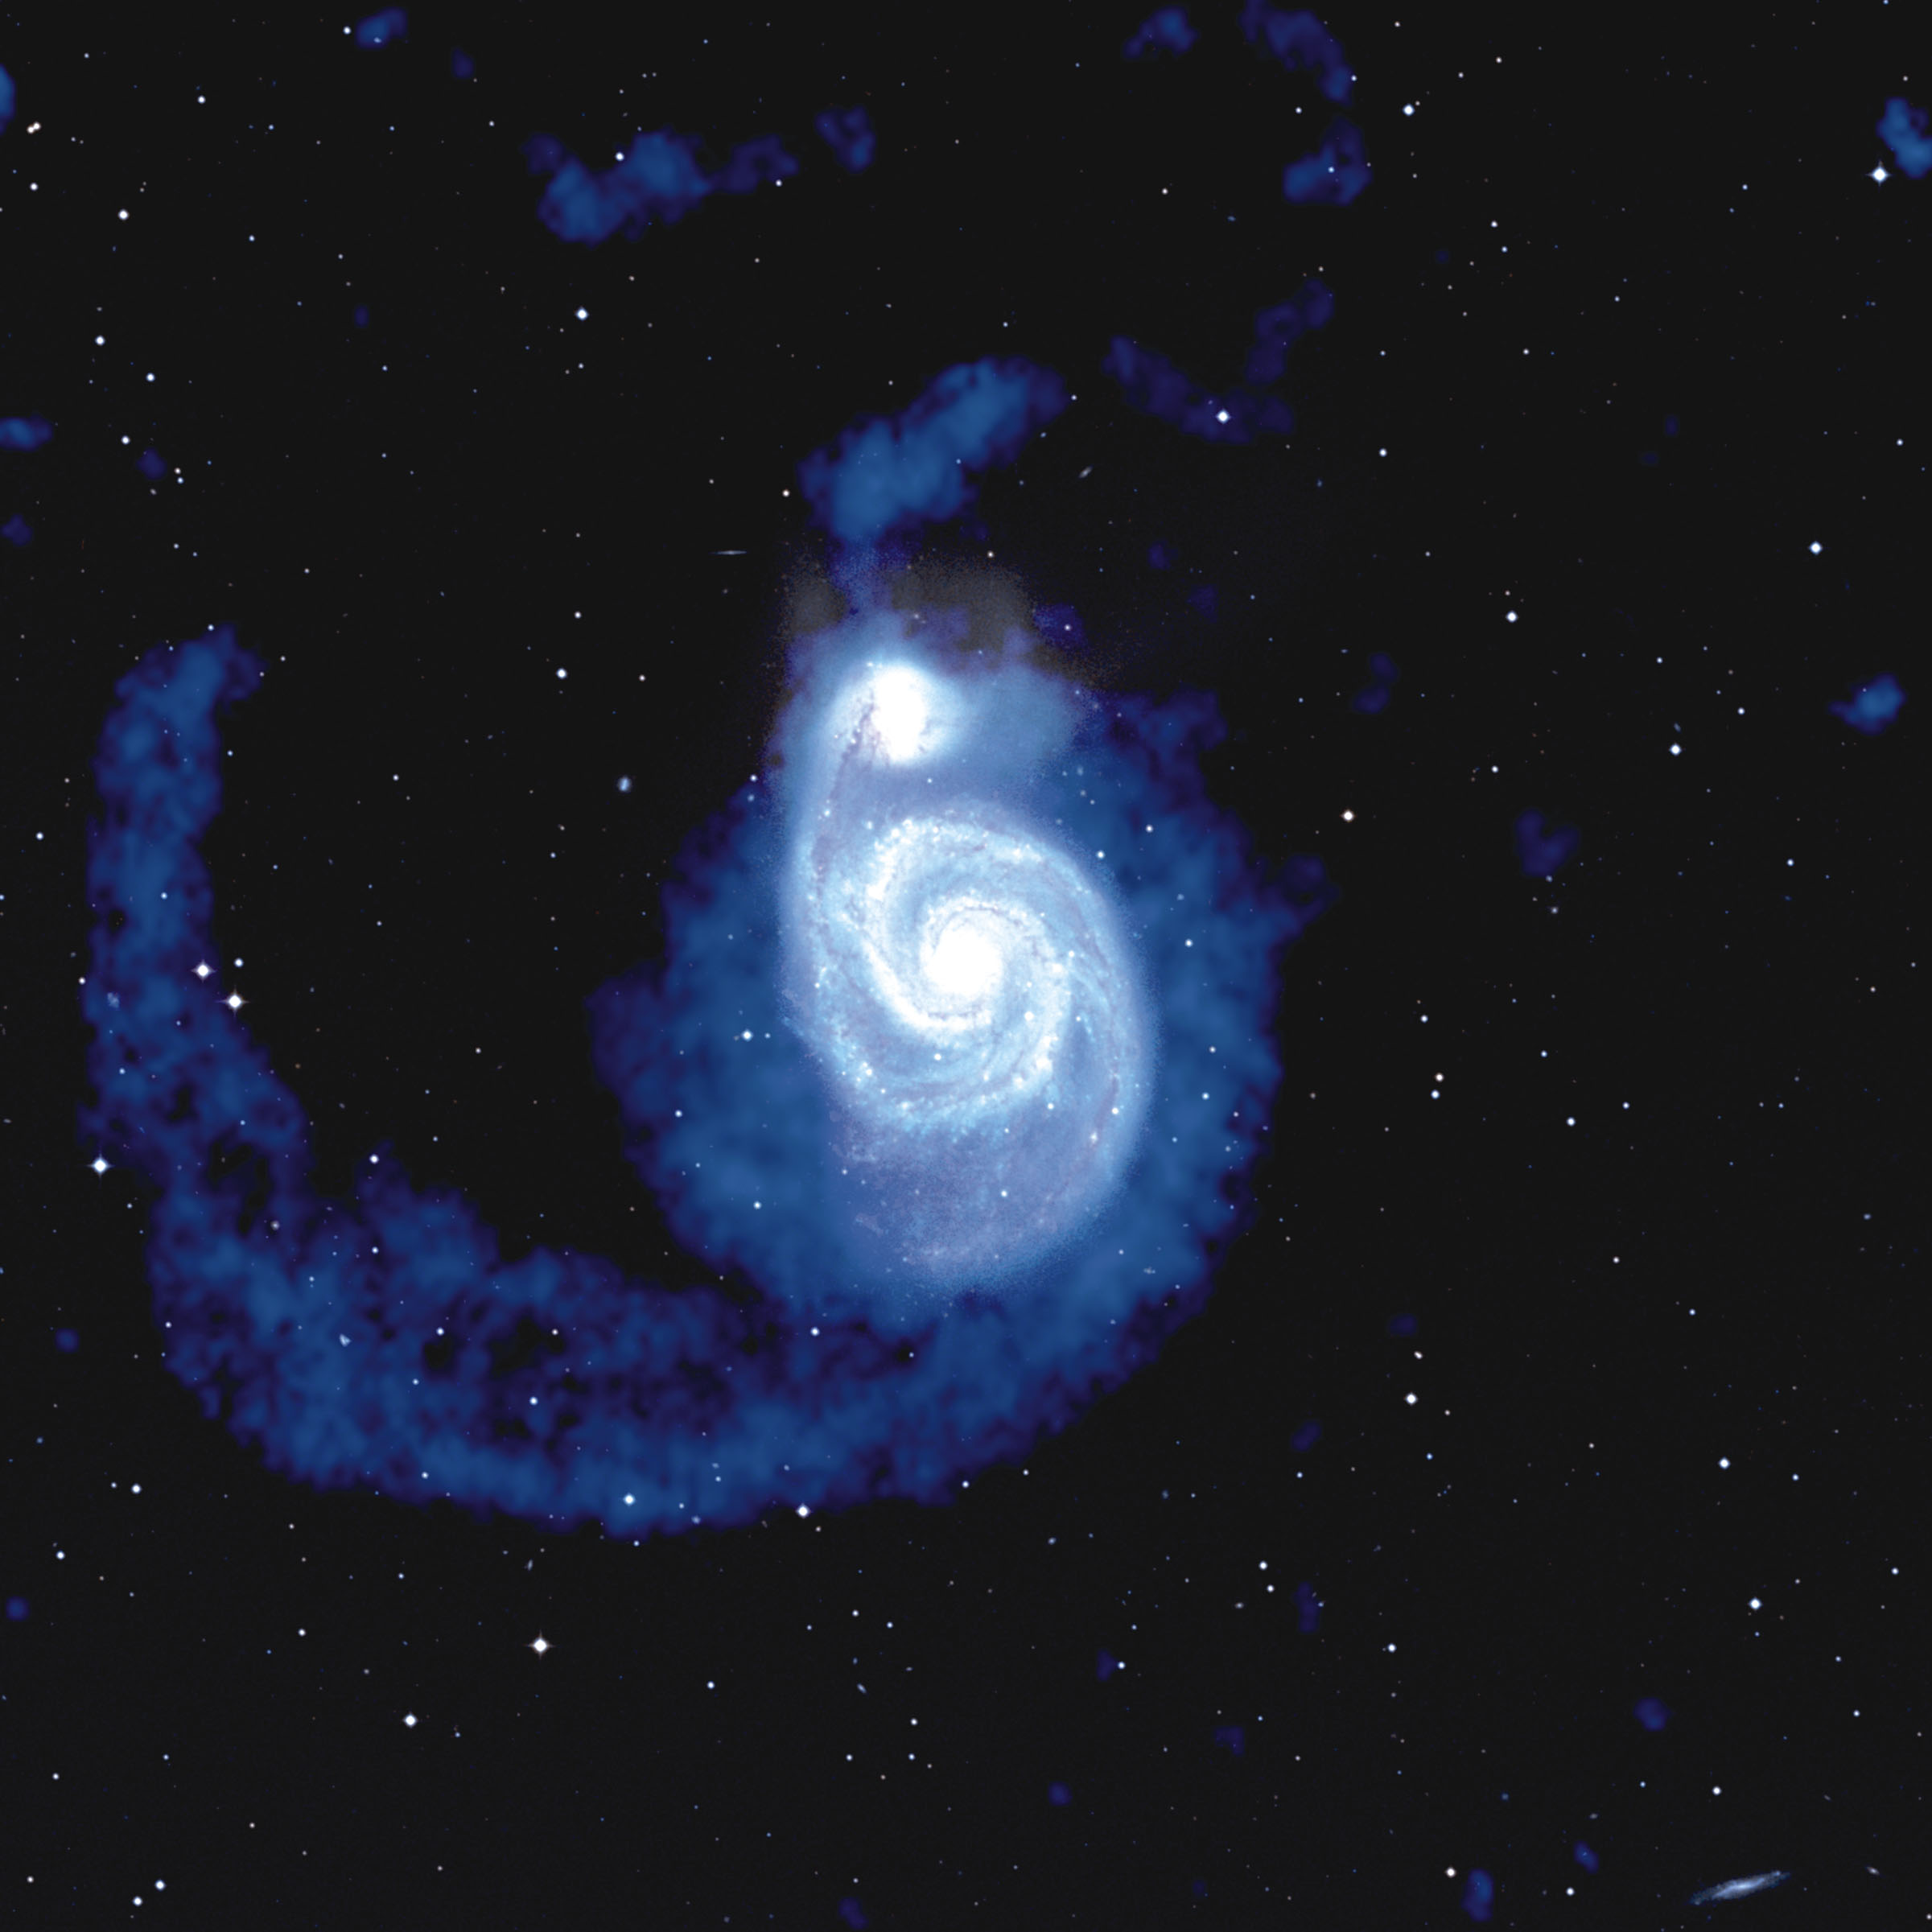 The Collision of M51